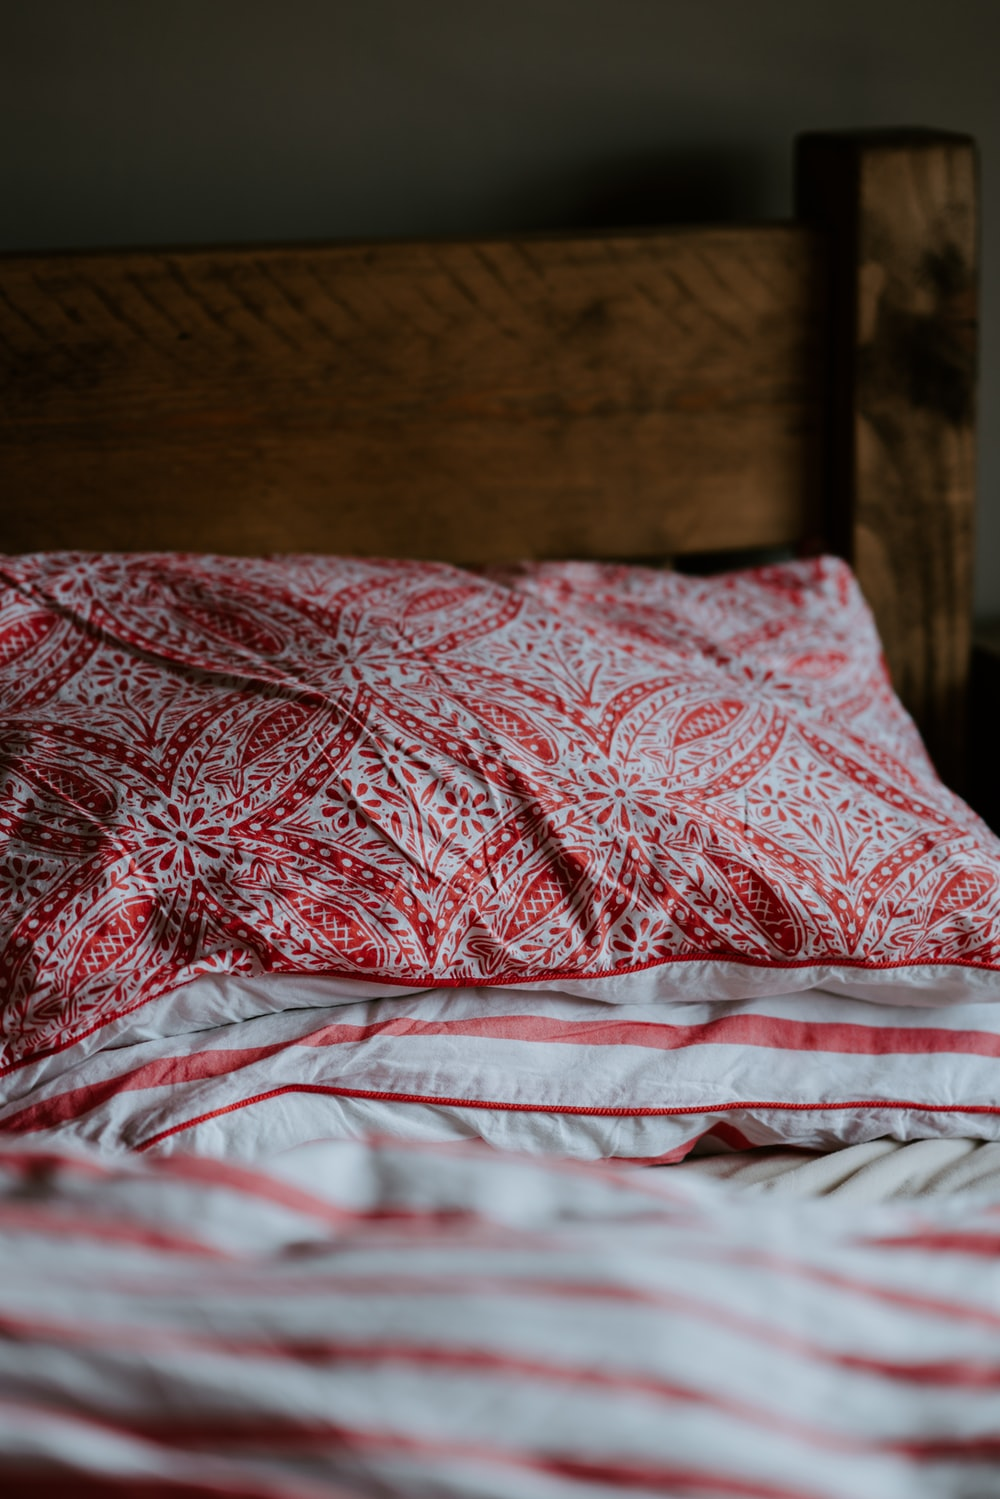 red and gray floral pillow on bedding